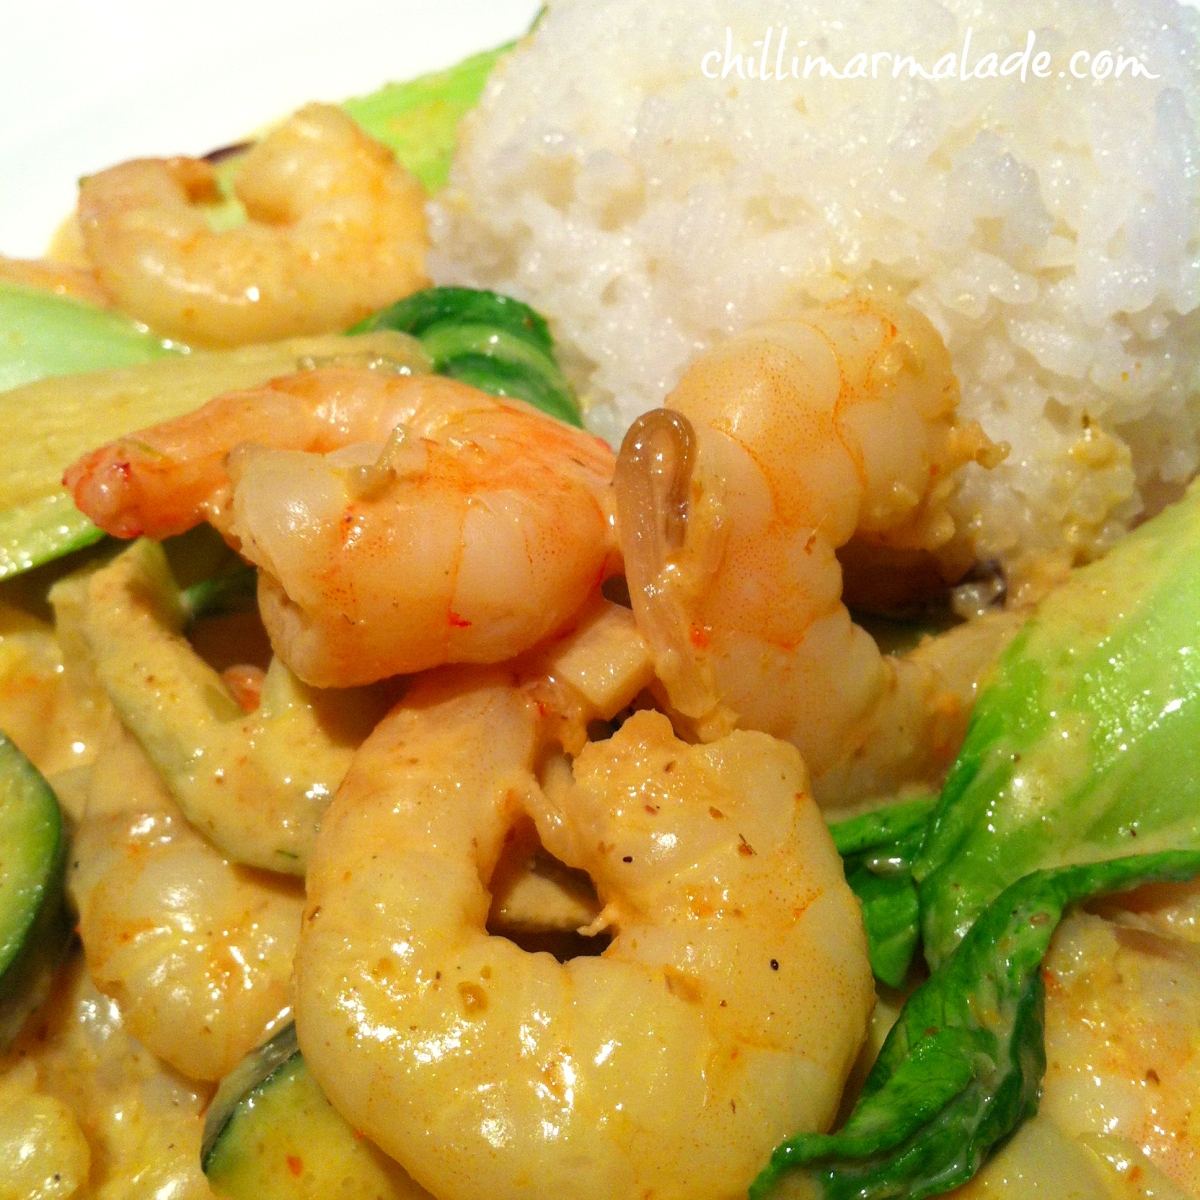 Thai yellow curry with prawns and pak choi